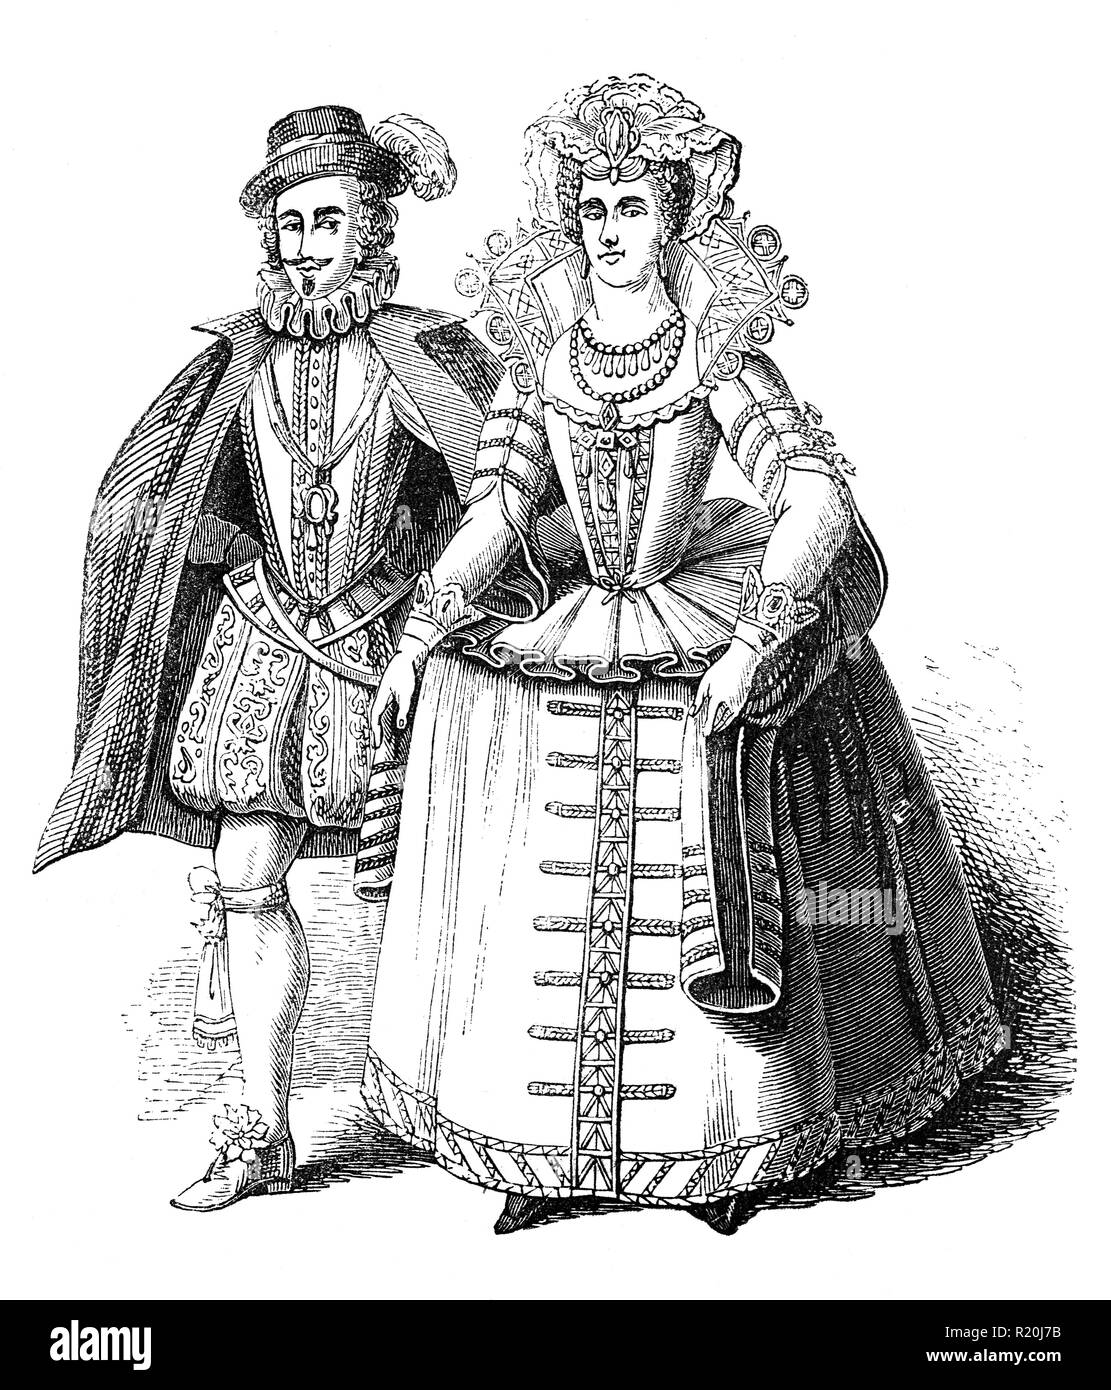 The Earl and Countess of Somerset.  Francis Howard Carr, the Countess was originally  married at the age of 14 to the 13-year-old Robert Devereux, 3rd Earl of Essex. The marriage was unconsumated and Frances married Somerset on 26 December 1613. Both were incriminated in the death of Sir Thomas Overbury but received a pardon from King James in January 1622 and were subsequently released from prison. - Stock Image